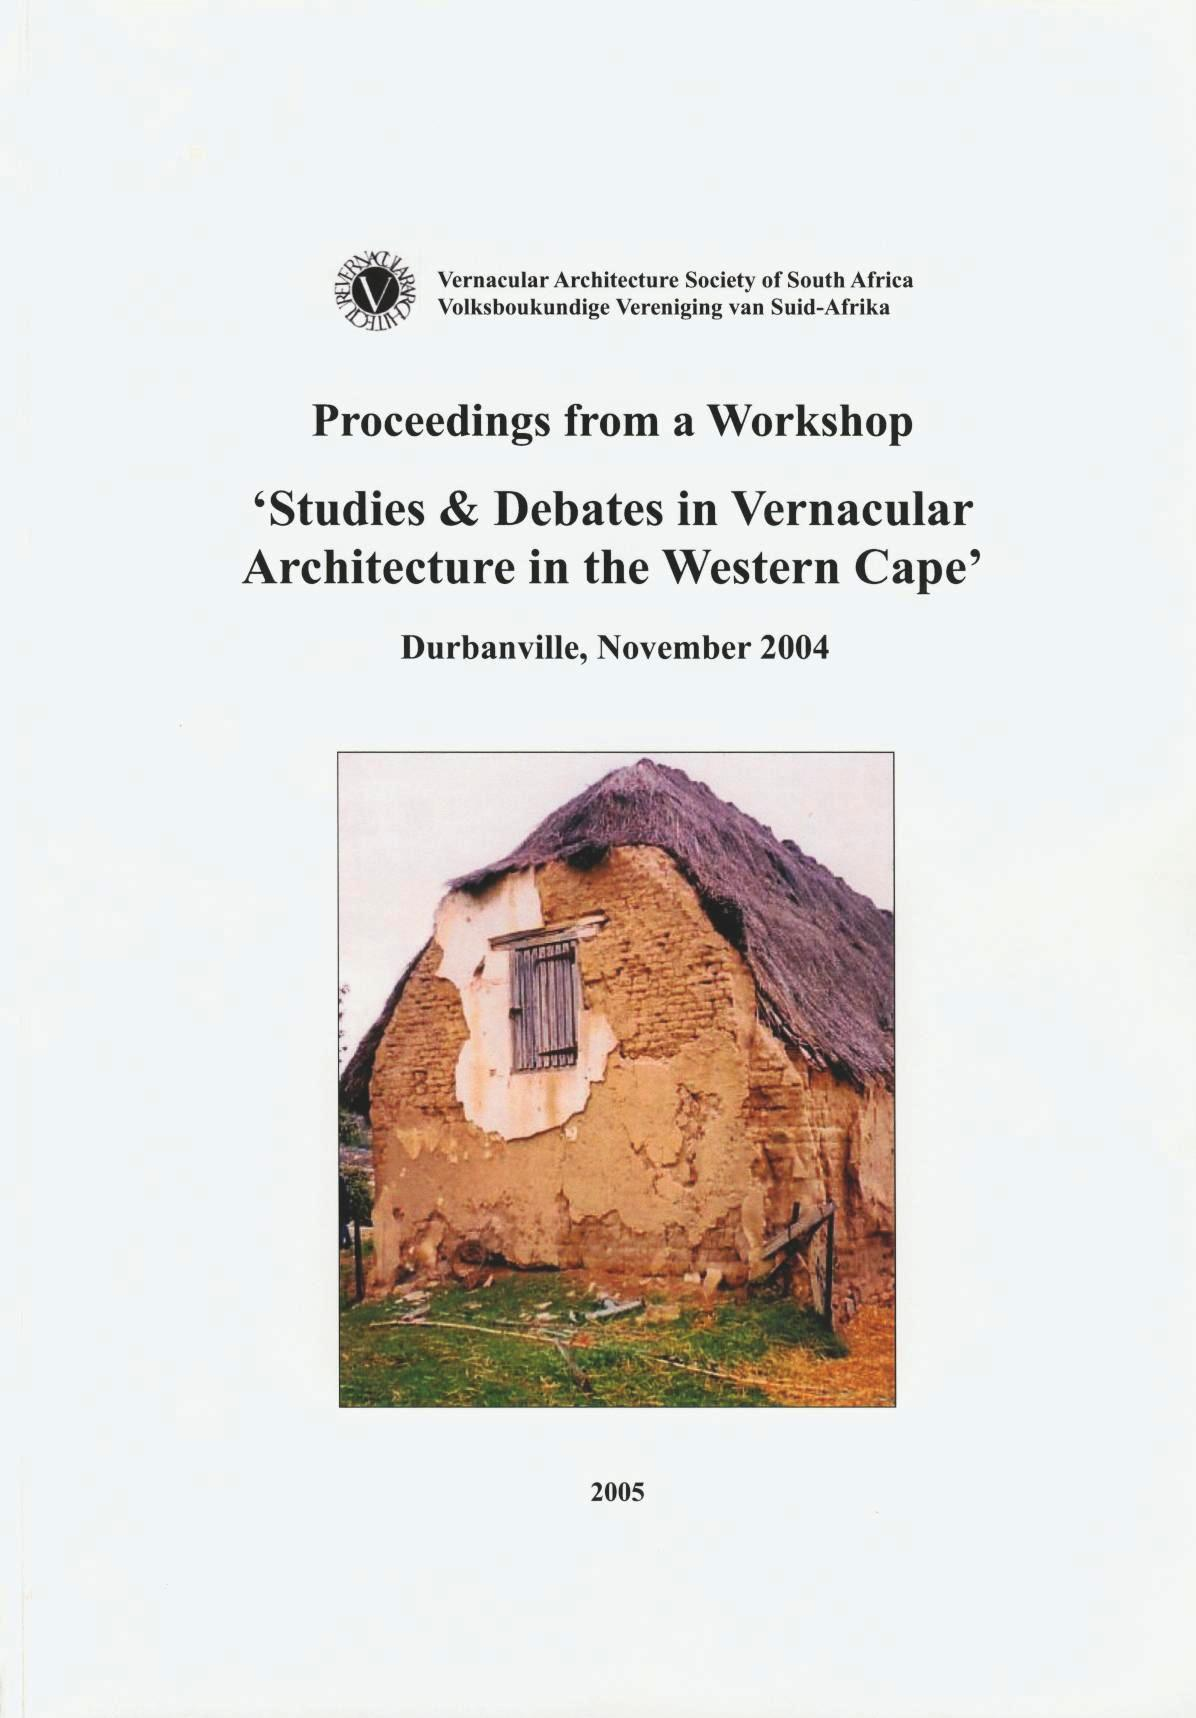 Studies & Debates in Vernacular Architecture in the Western Cape